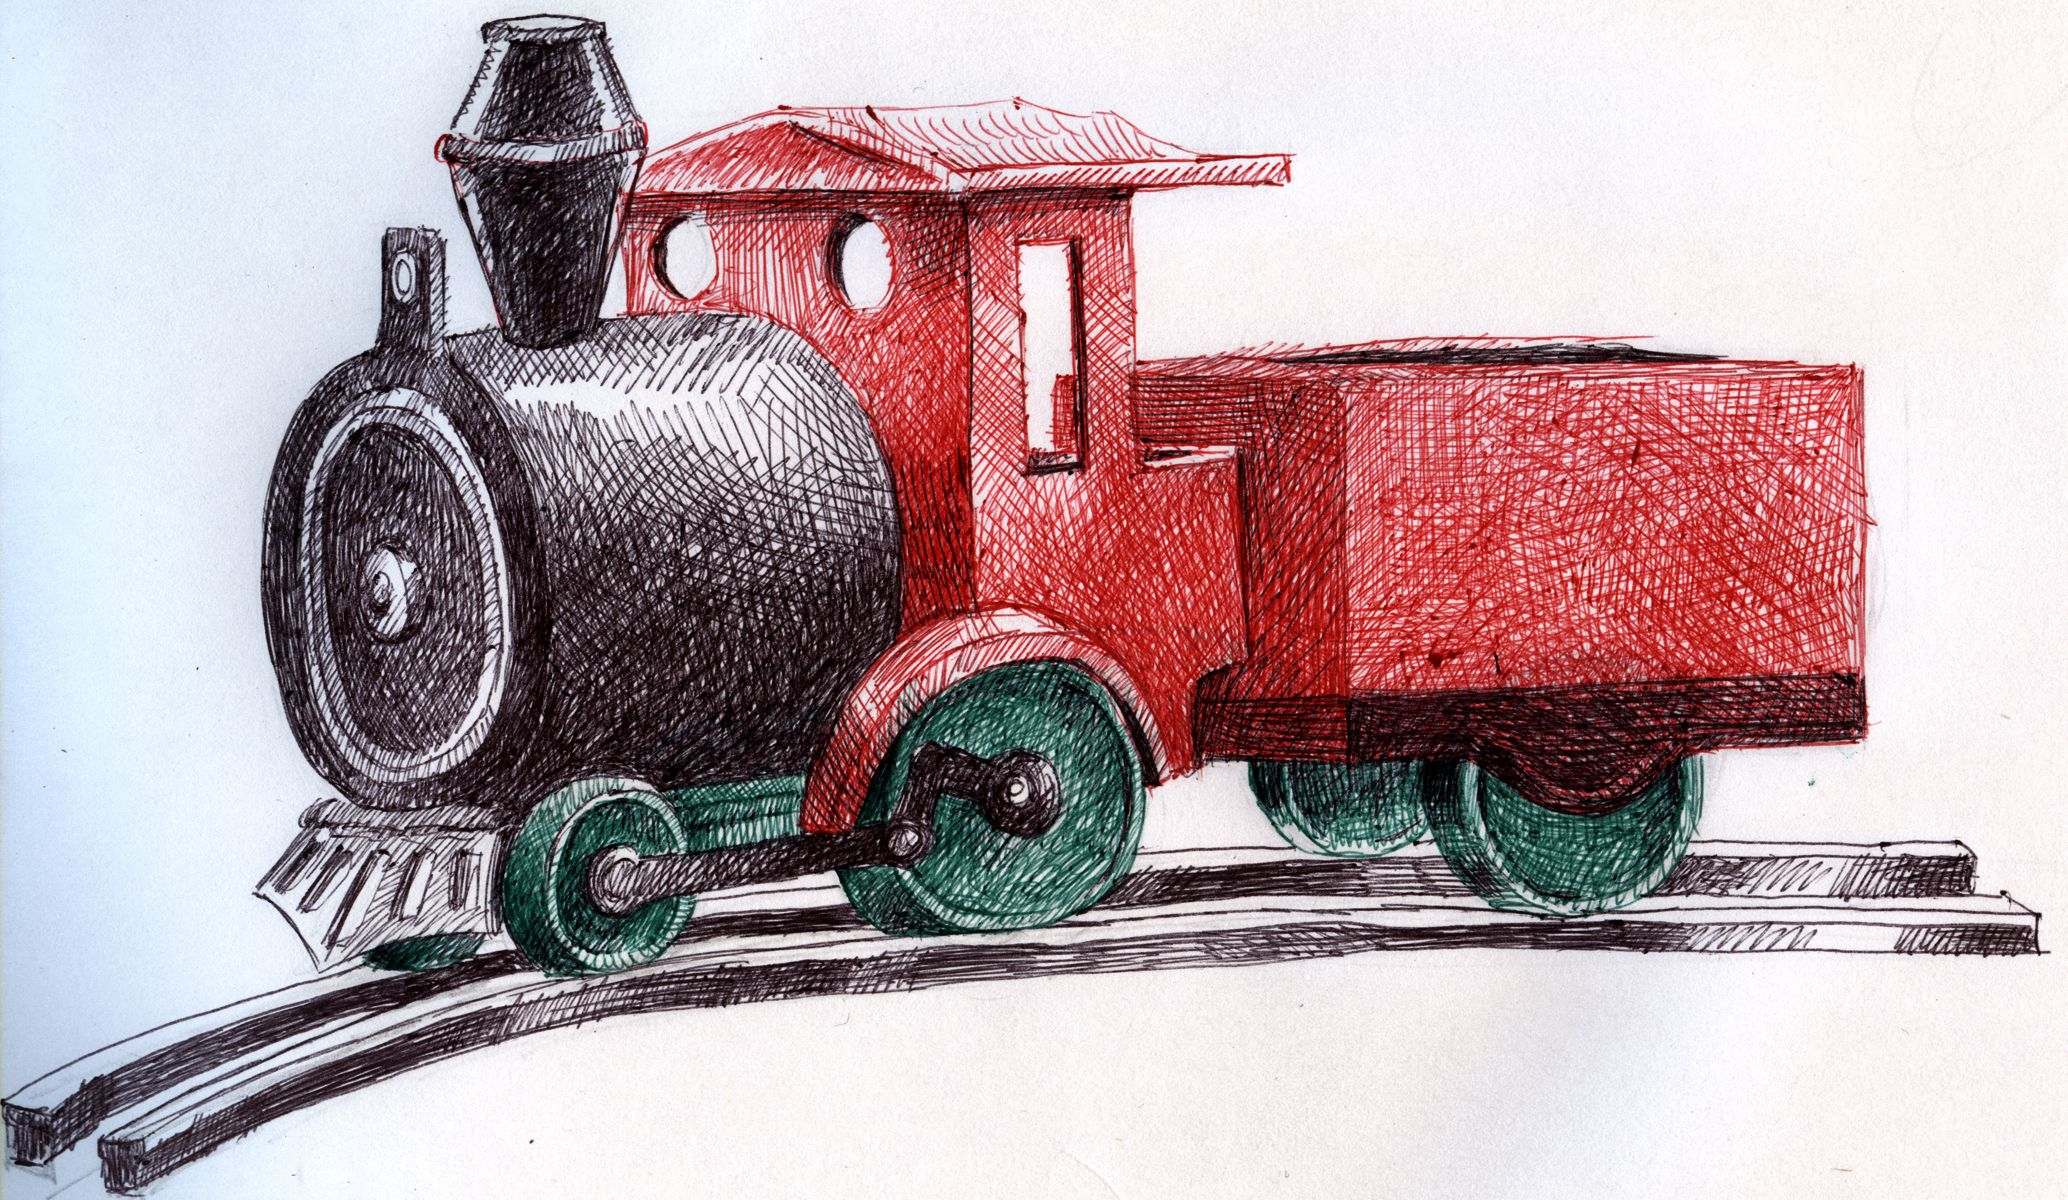 toy train picture by roon for childrens toys drawing contest